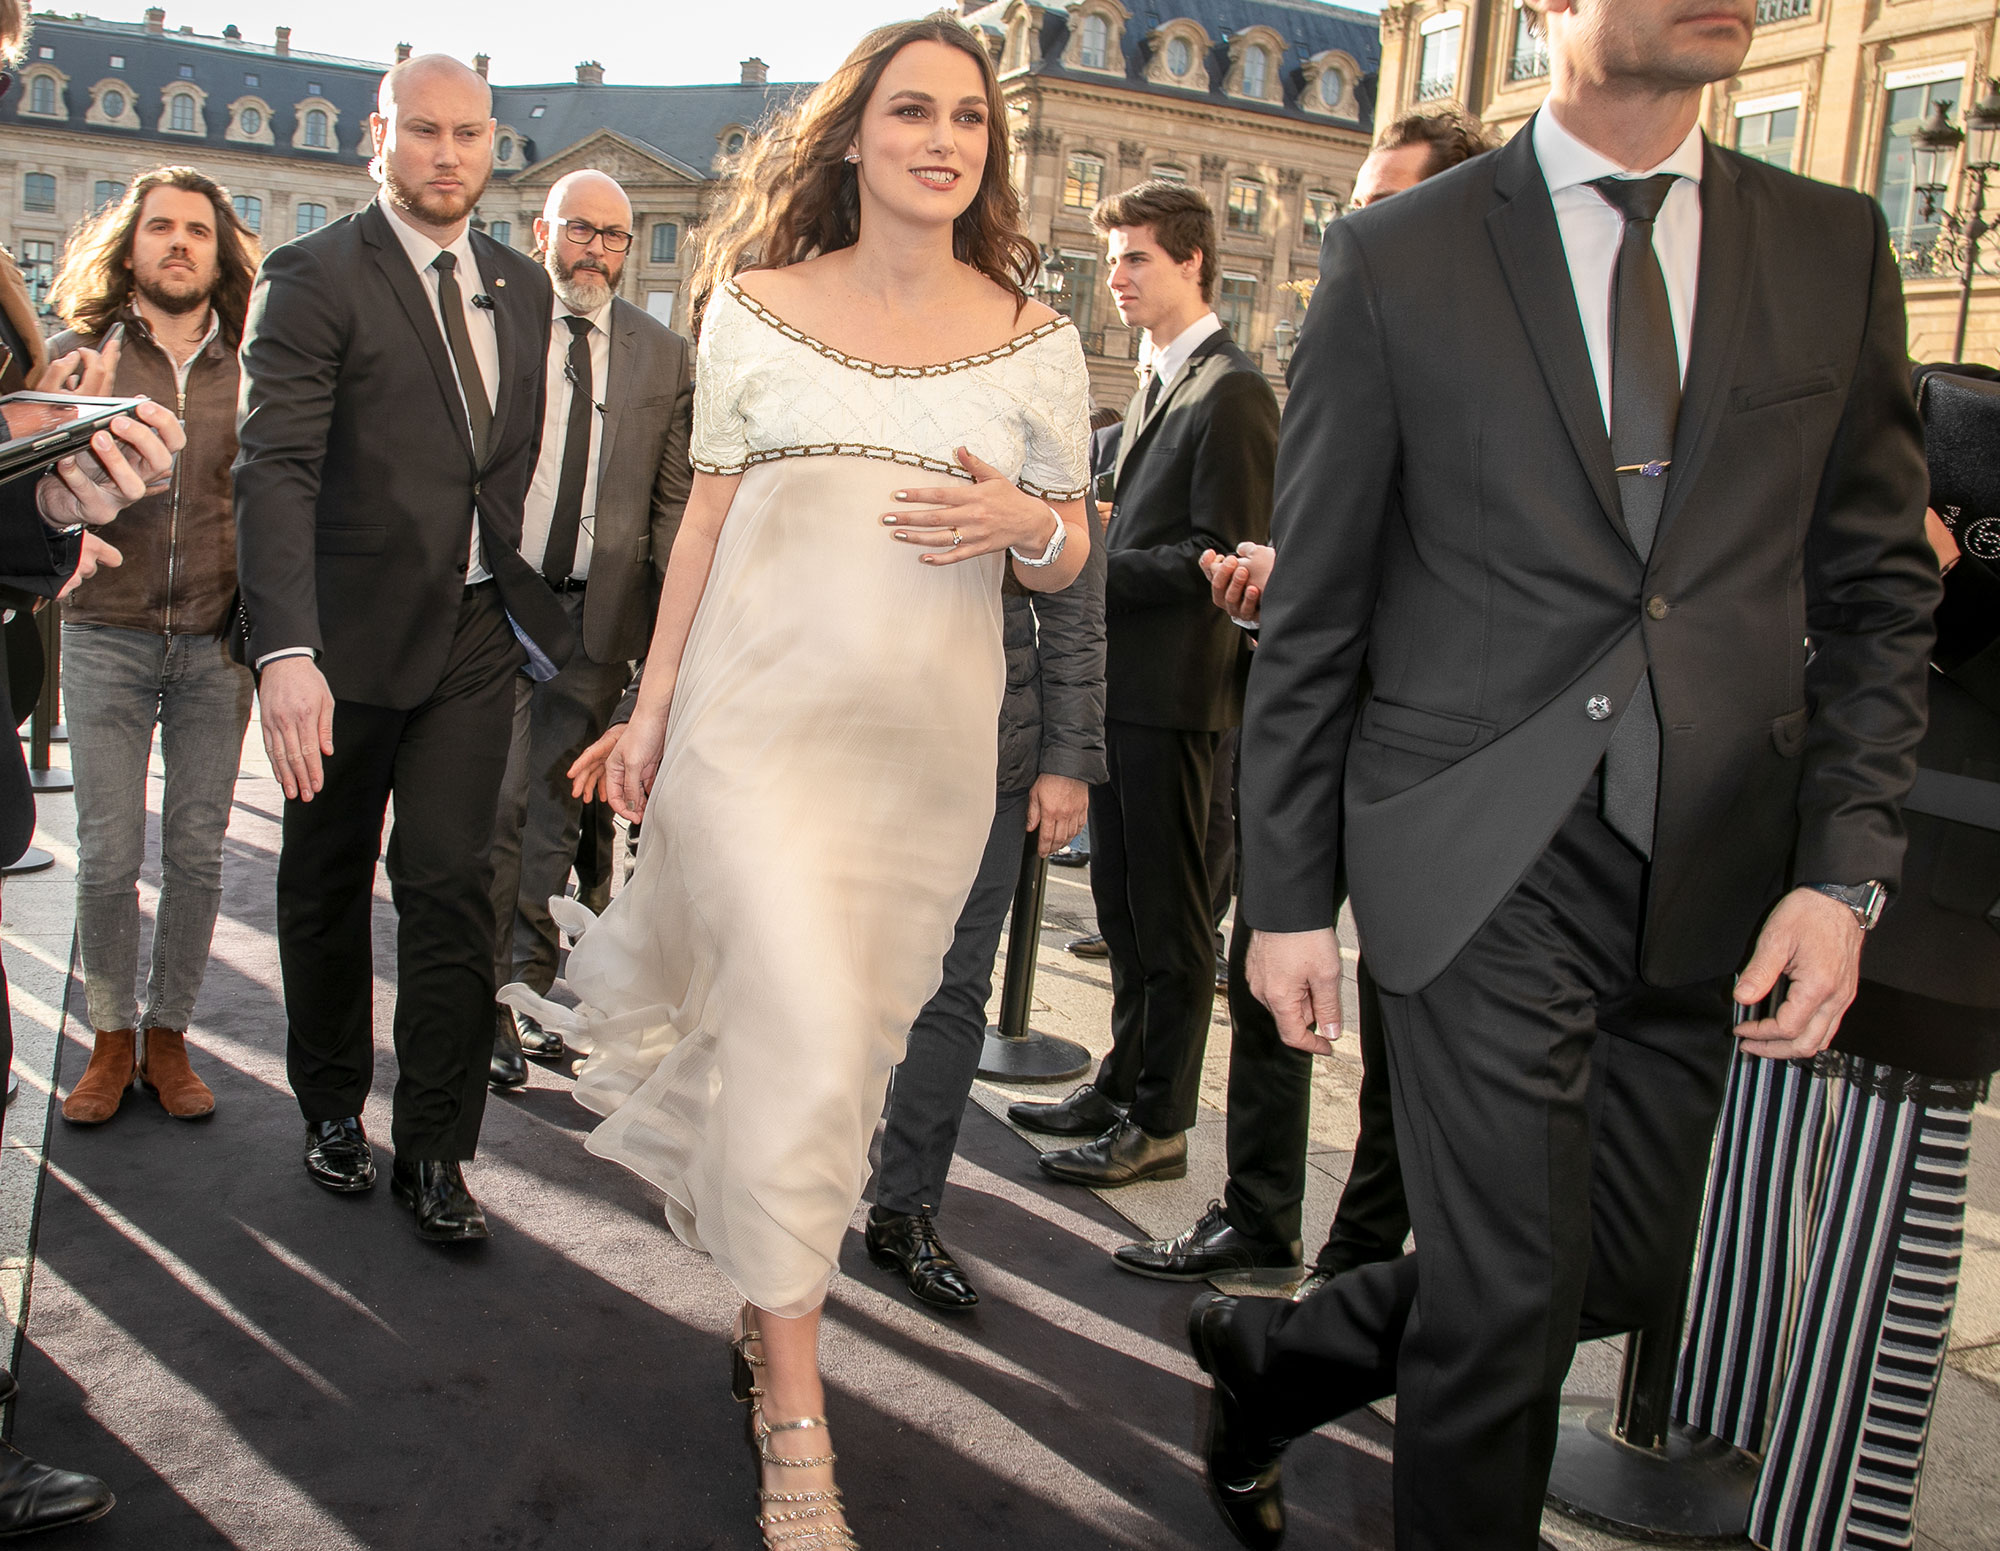 Keira Knightley Walking in Paris France Cream Dress